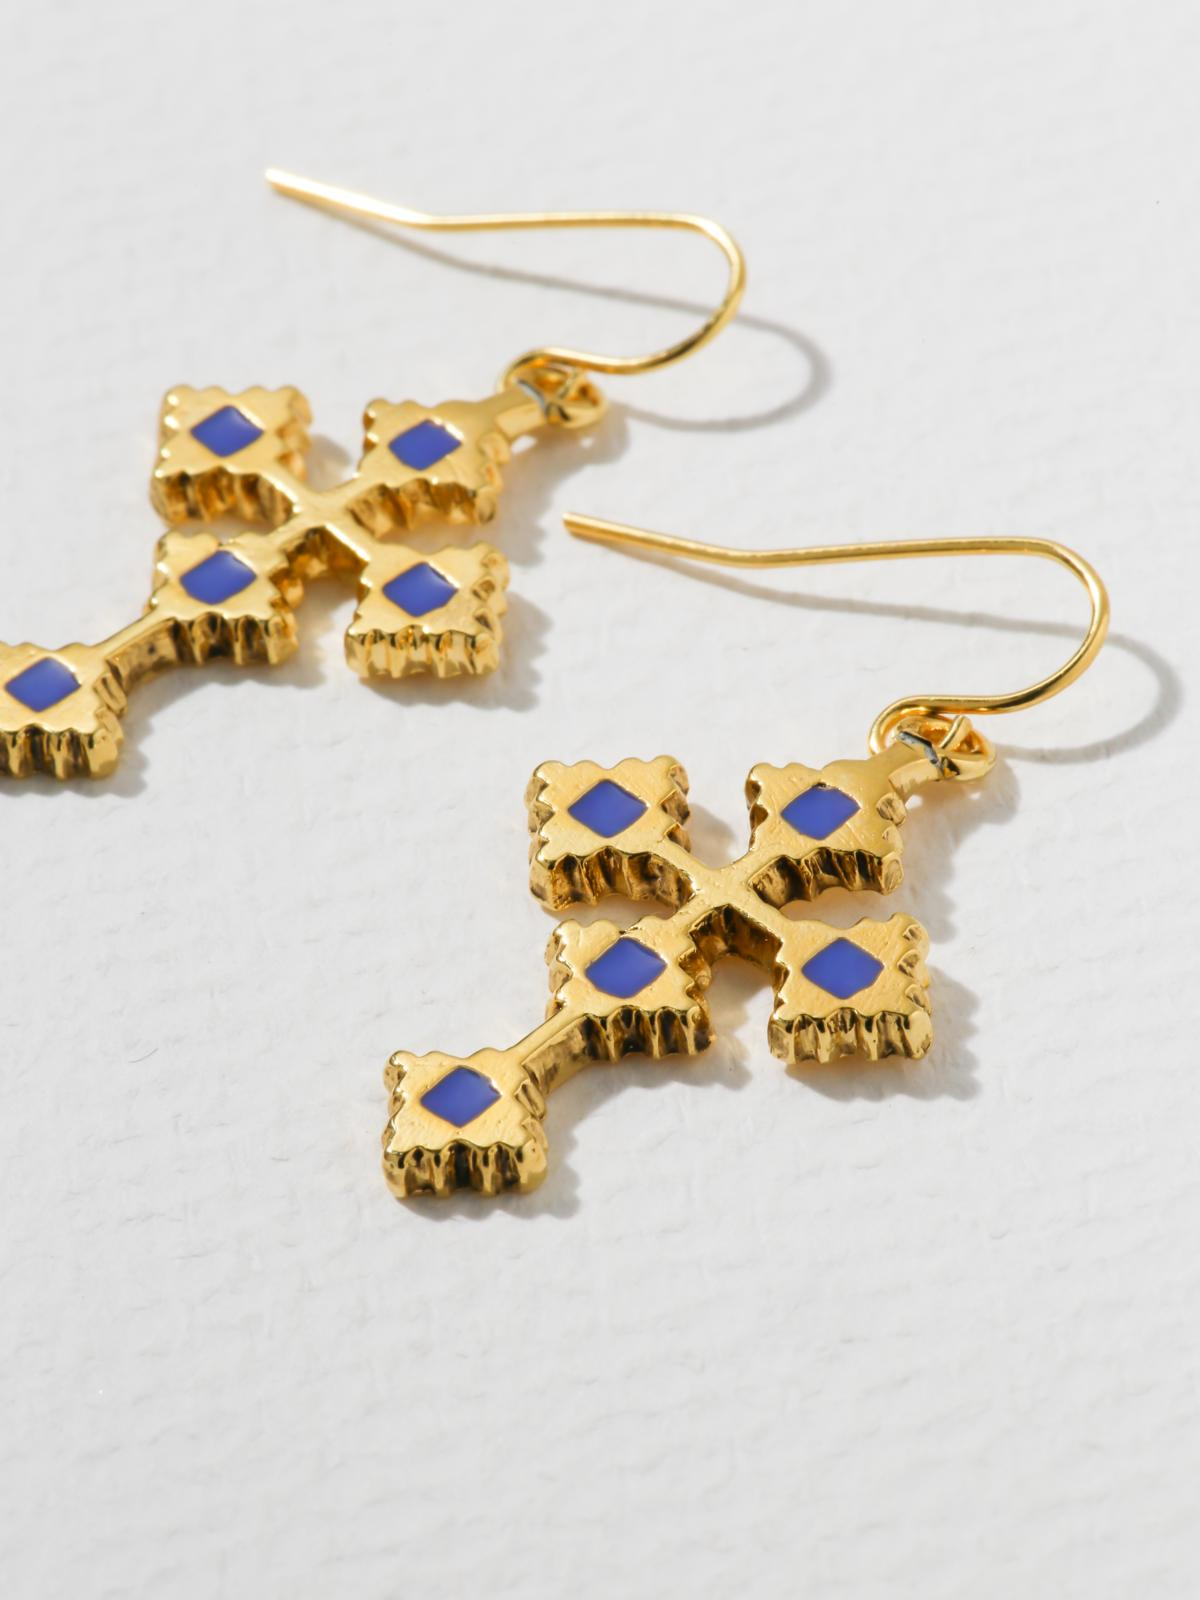 The Paradise Cross Earrings